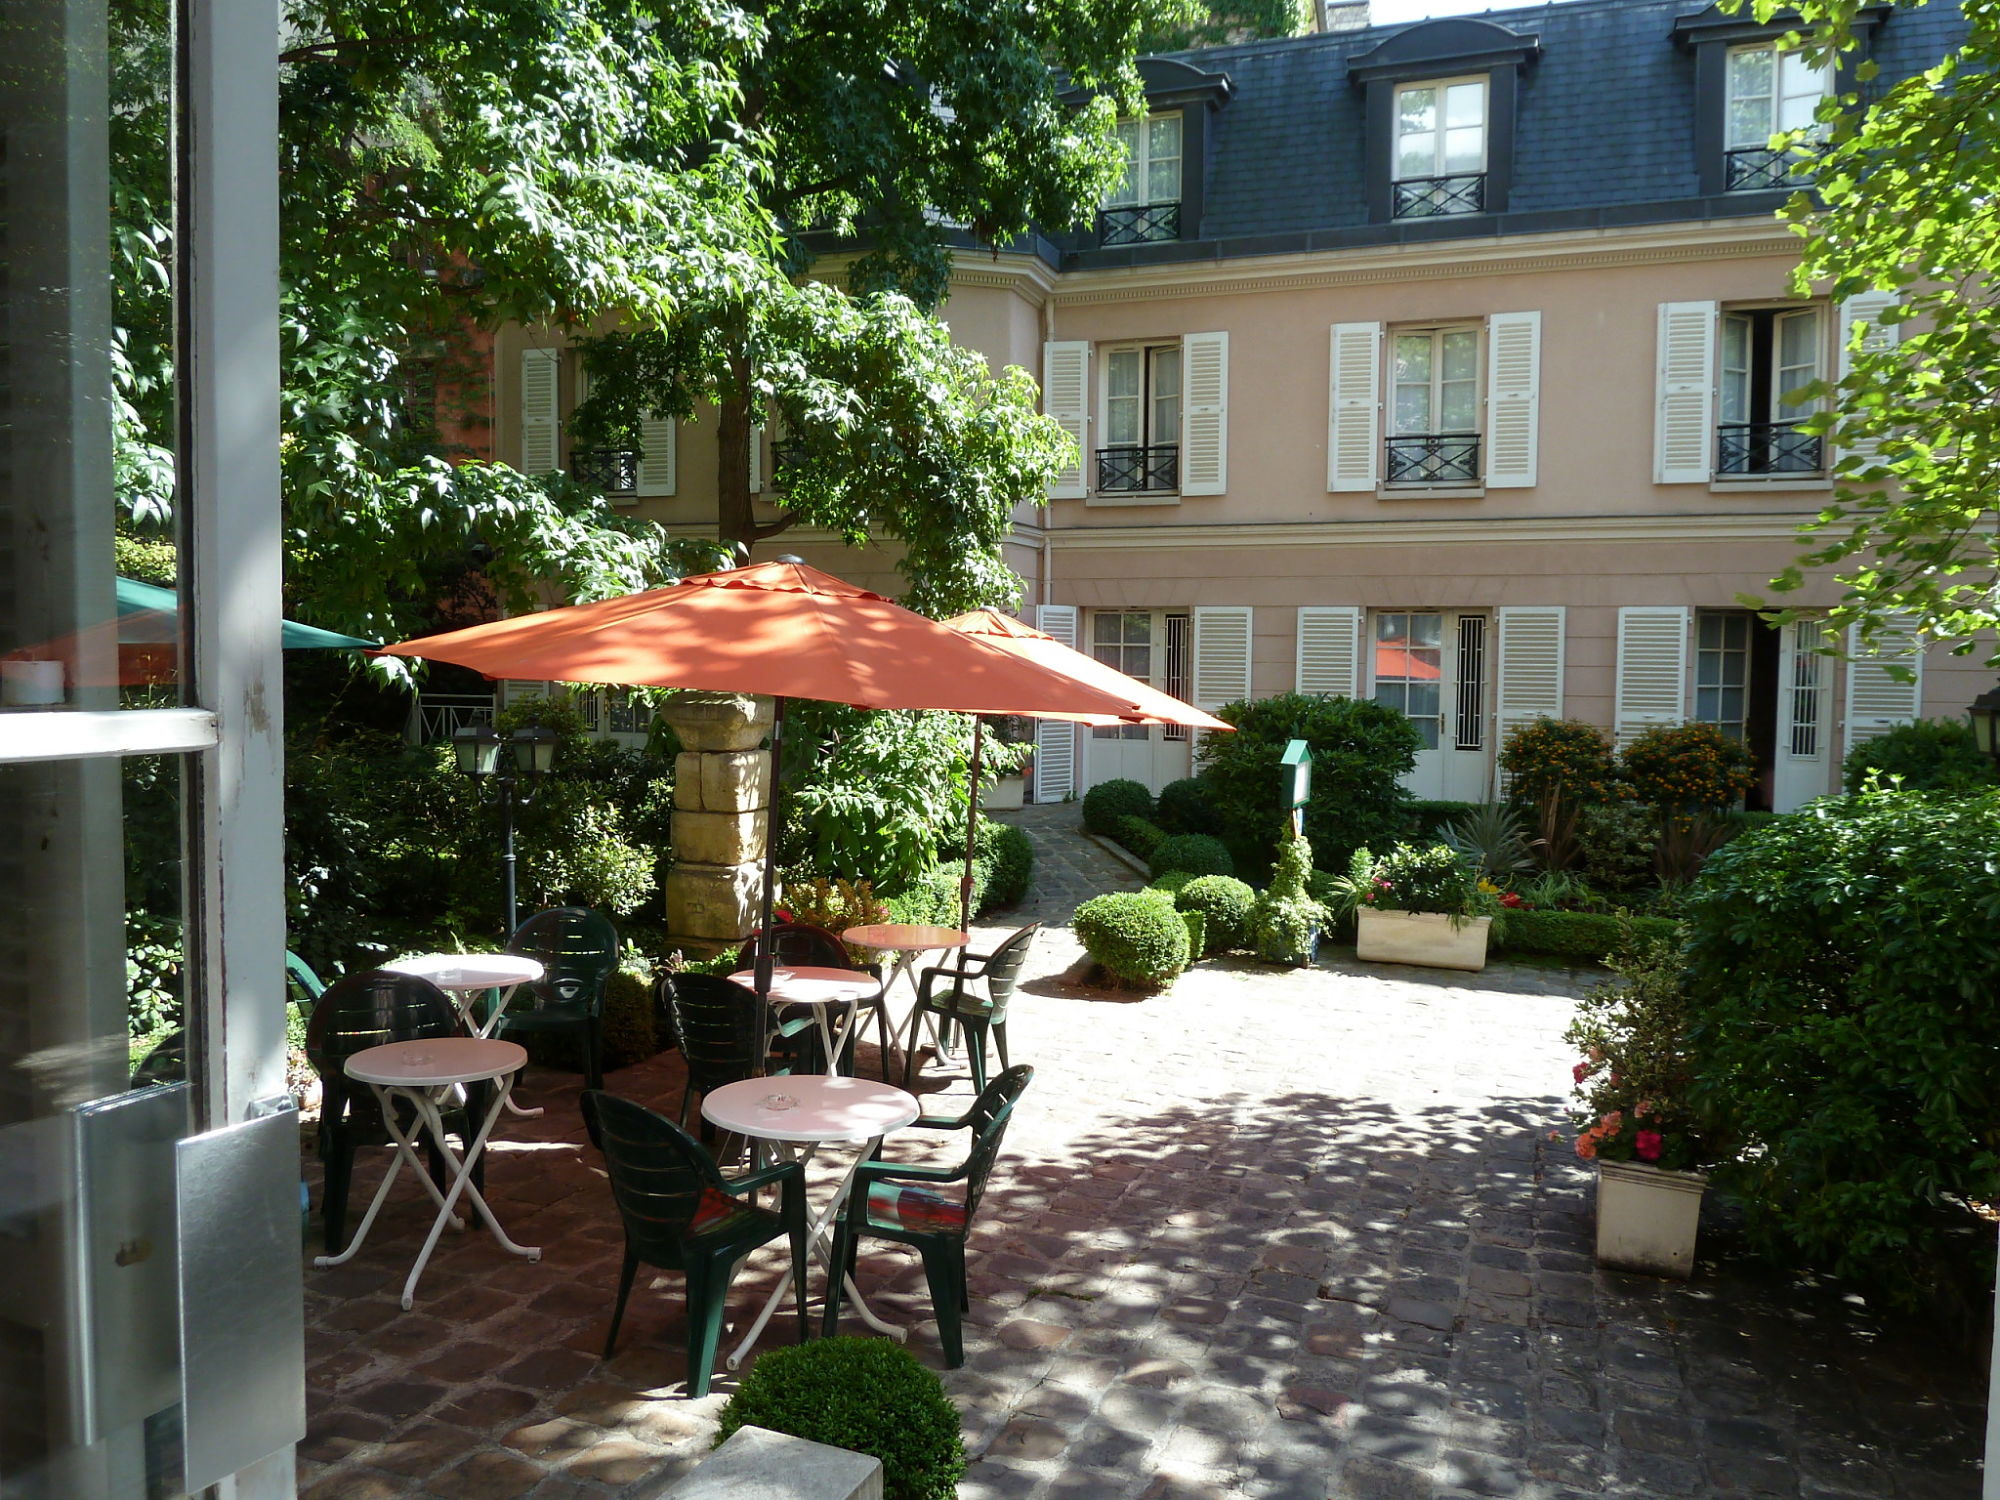 Shady garden of our hotel in Paris.